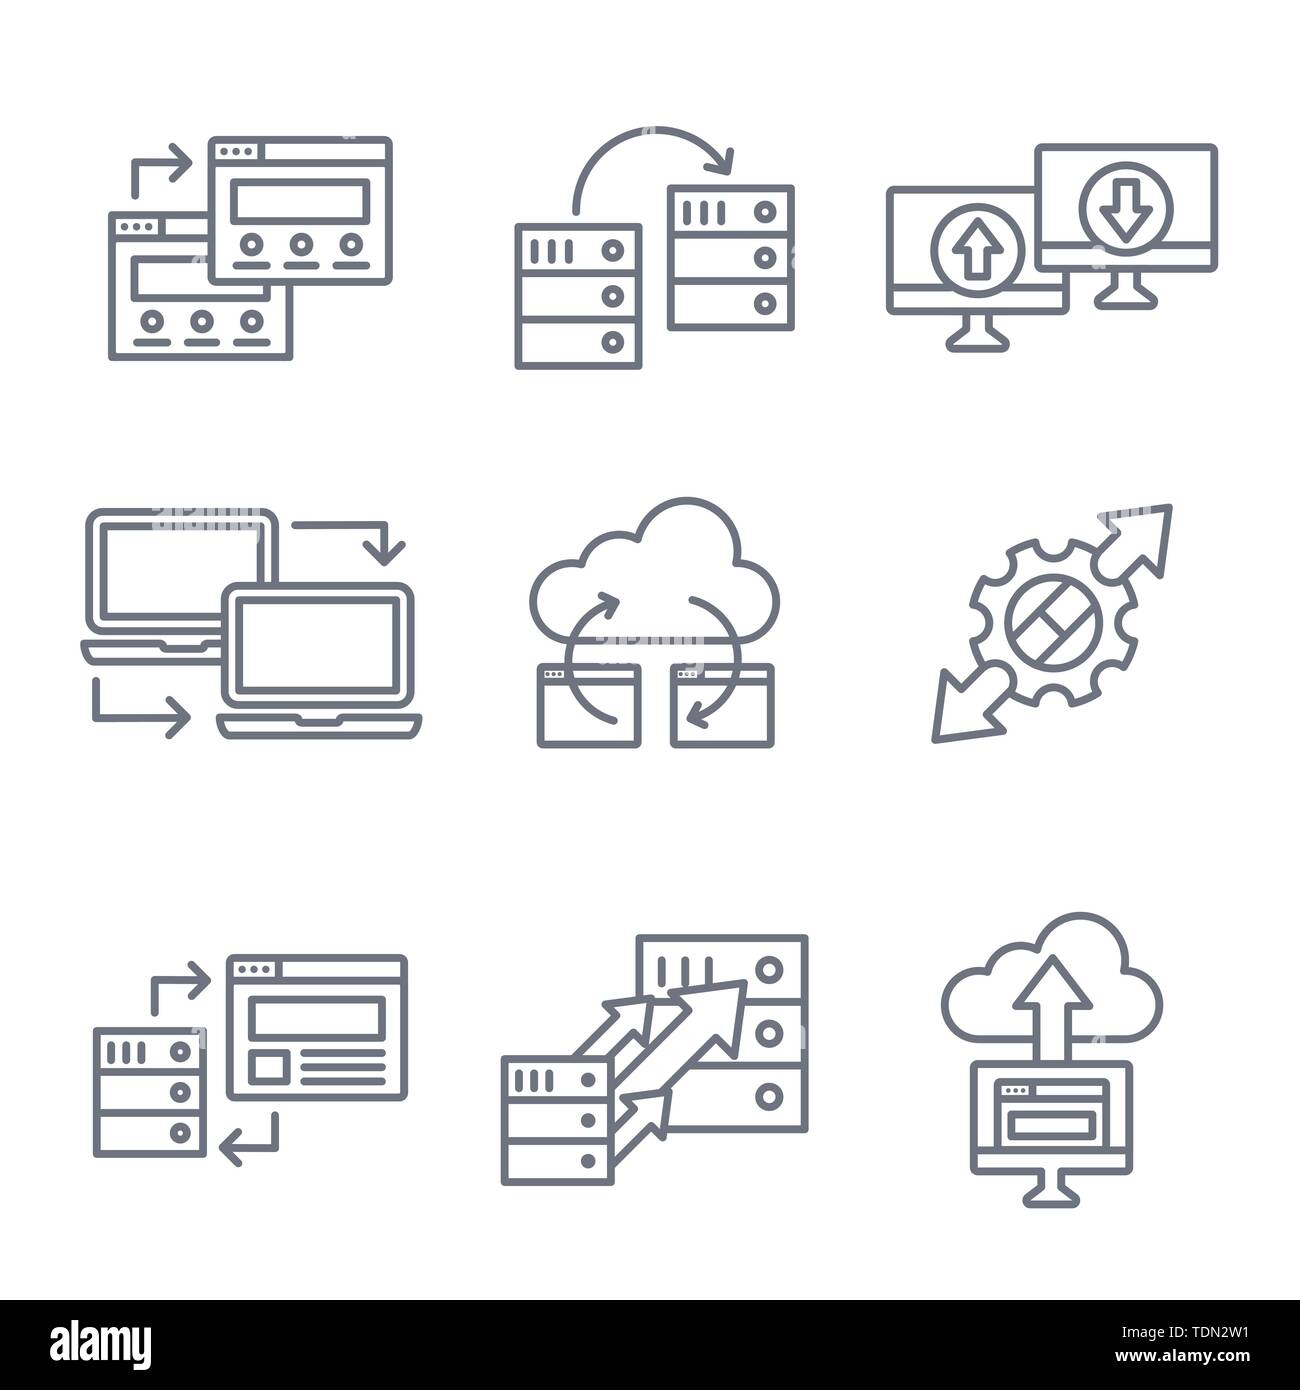 Website Data Transfer Icon Set w laptops, arrows, and imagery of transfer - Stock Image